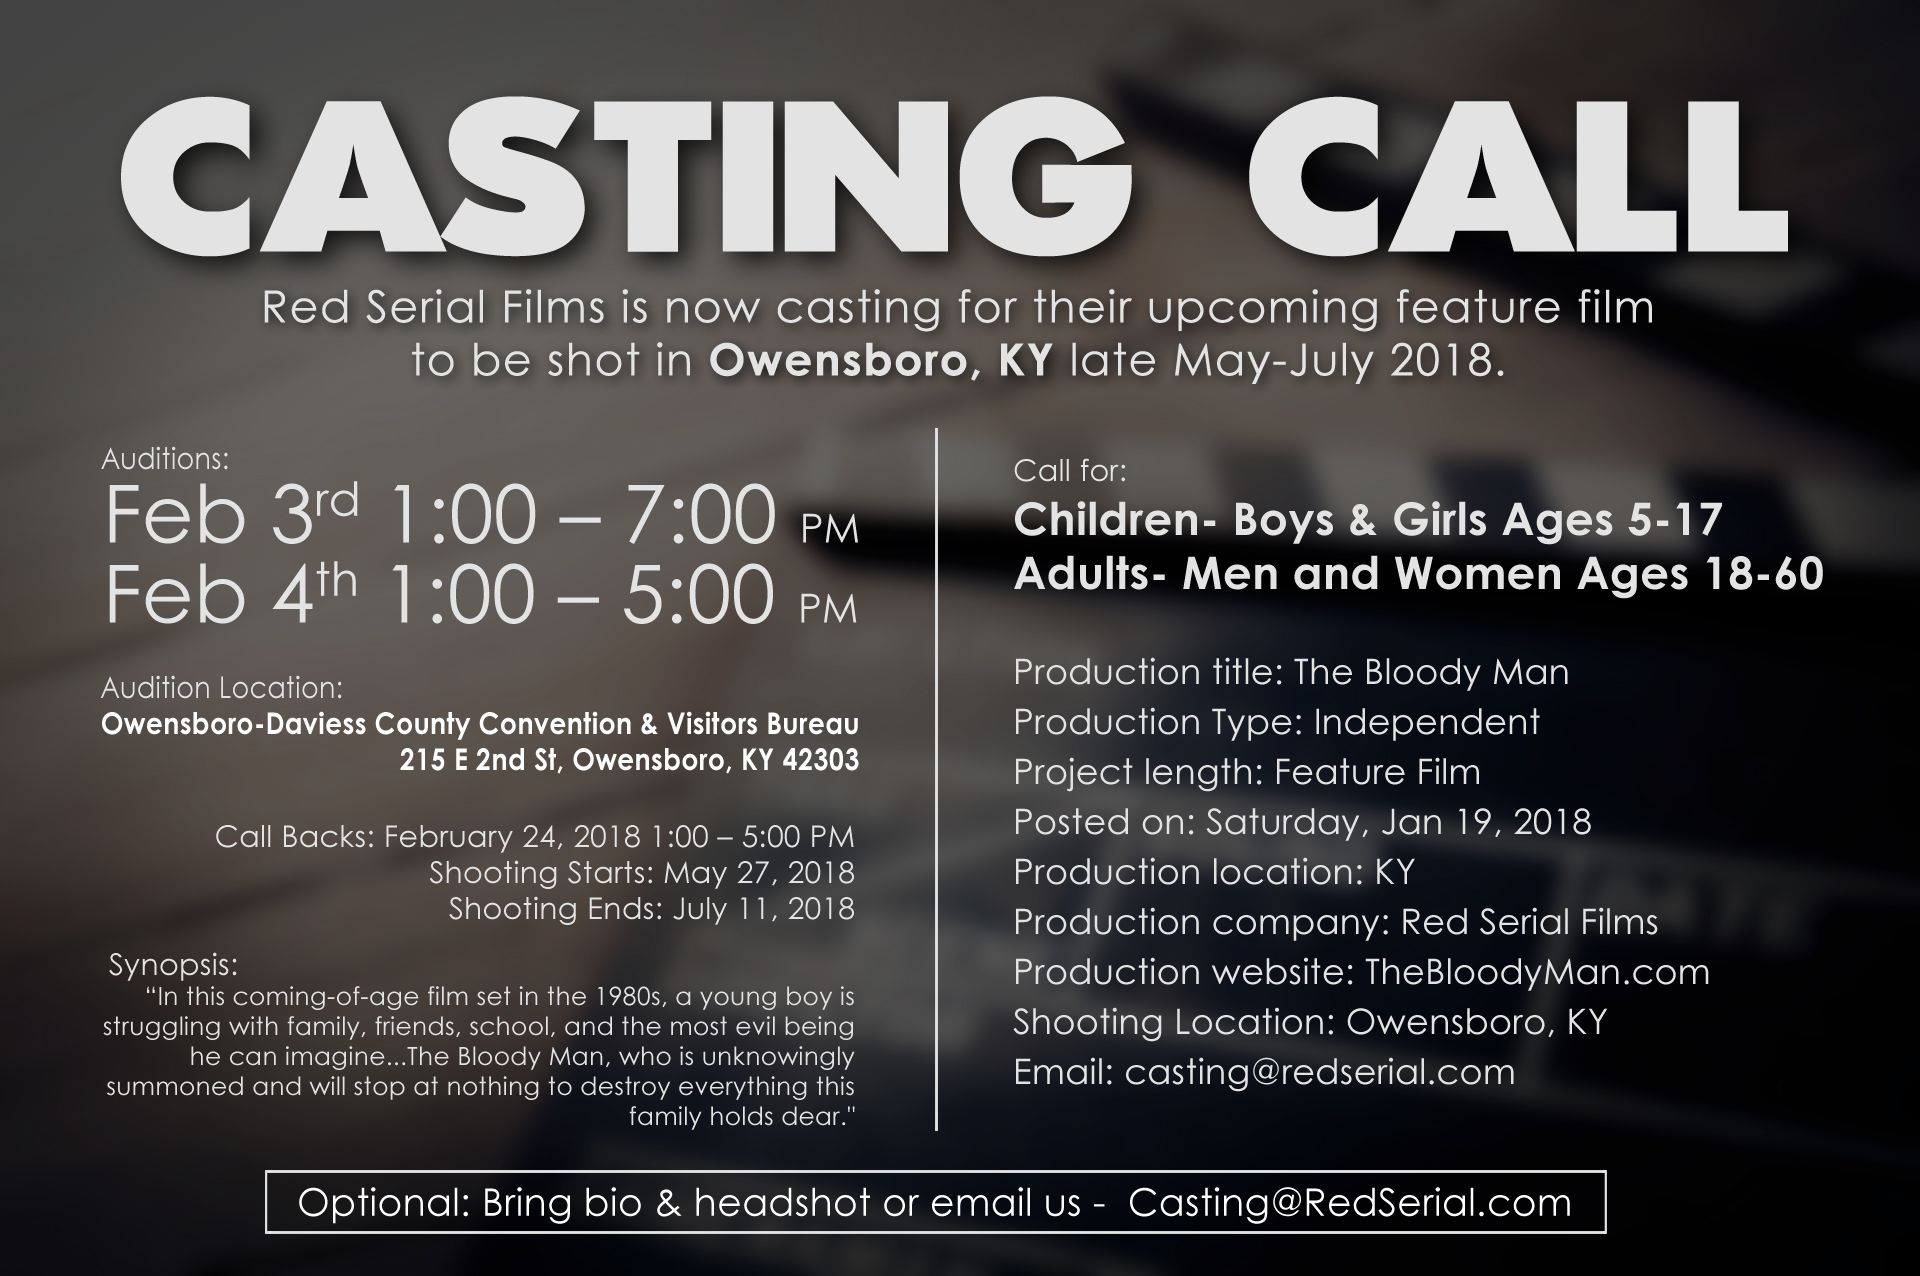 Red Serial Films Casting Call